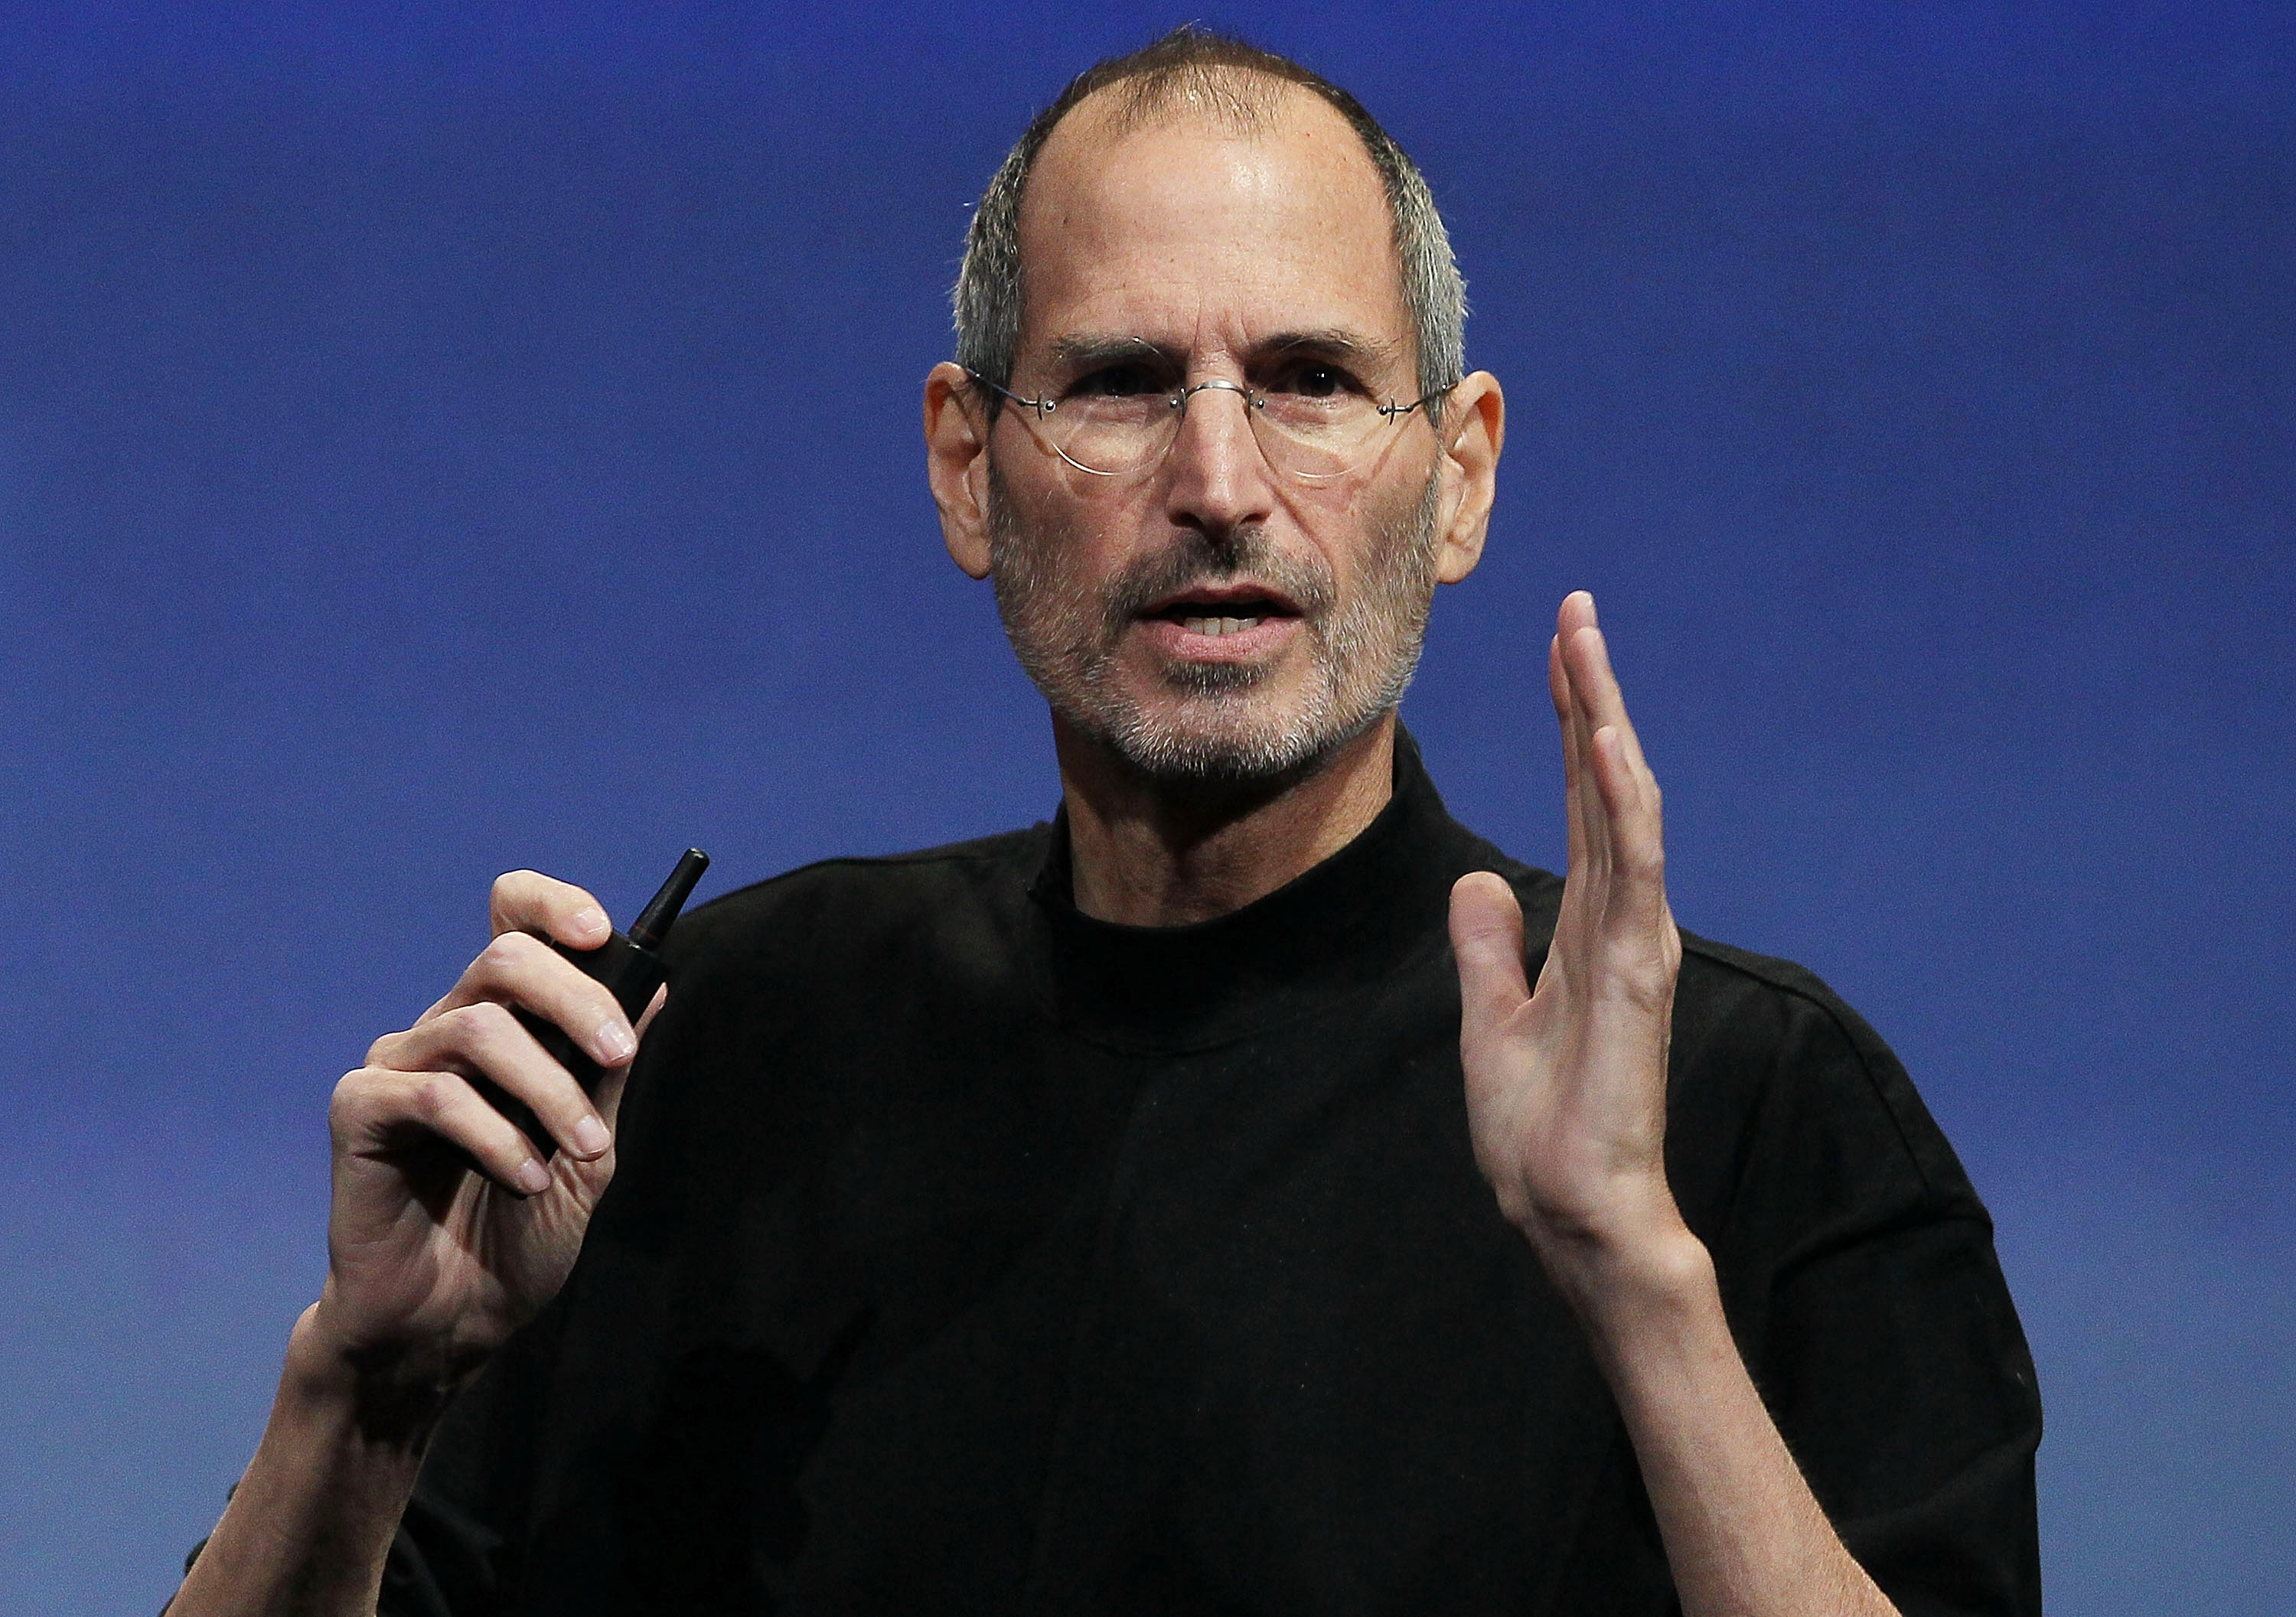 Apple CEO Steve Jobs speaks during an Apple special event April 8, 2010 in Cupertino, California.